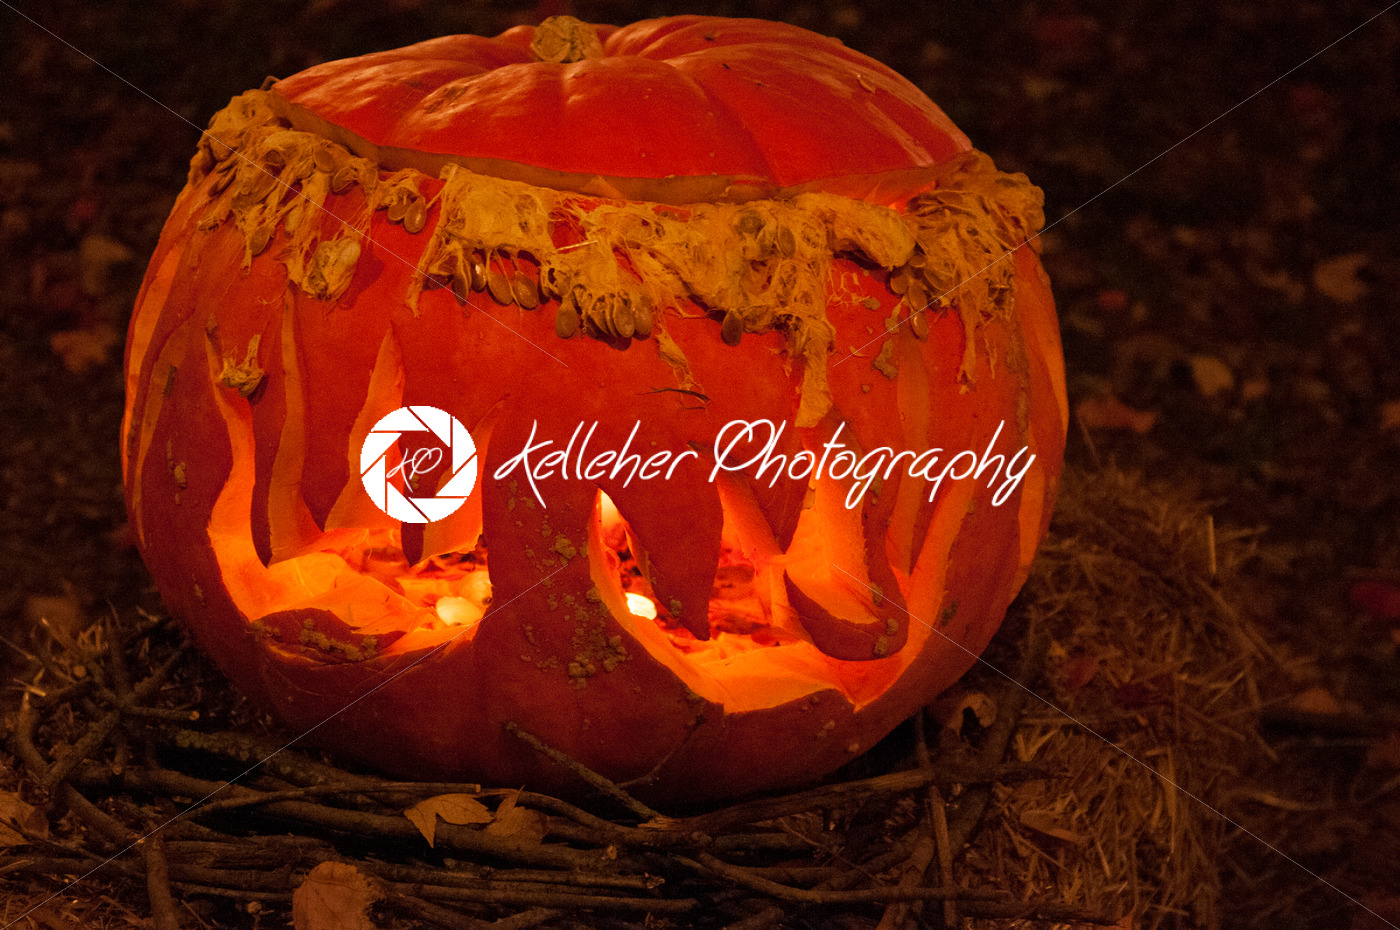 CHADDS FORD, PA – OCTOBER 26: The Great Pumpkin Carve carving contest on October 26, 2013 - Kelleher Photography Store